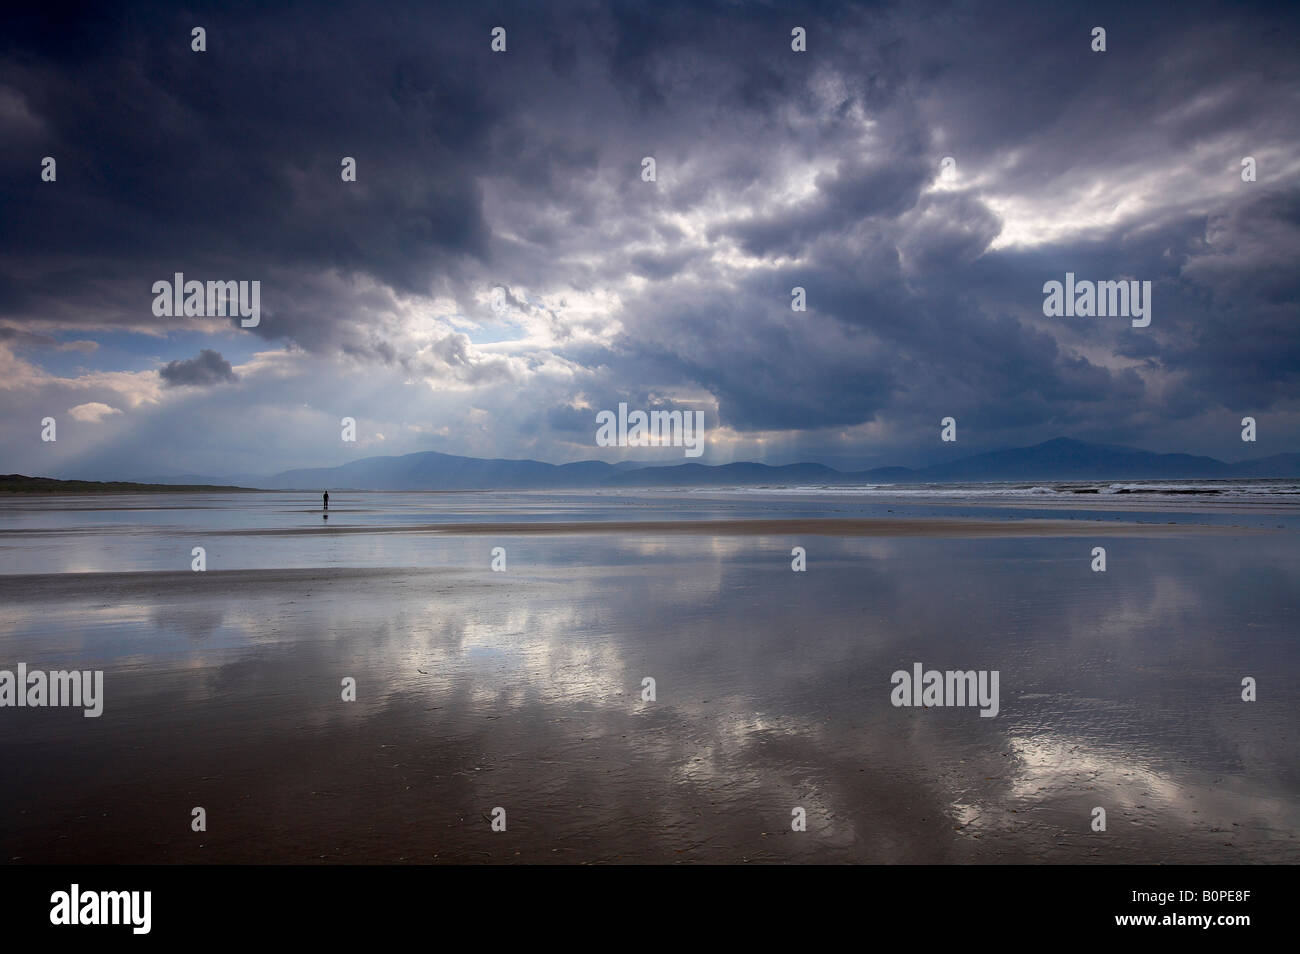 a solitary figure on the beach, Inch Strand, Dingle Peninsula, County Kerry, Ireland - Stock Image